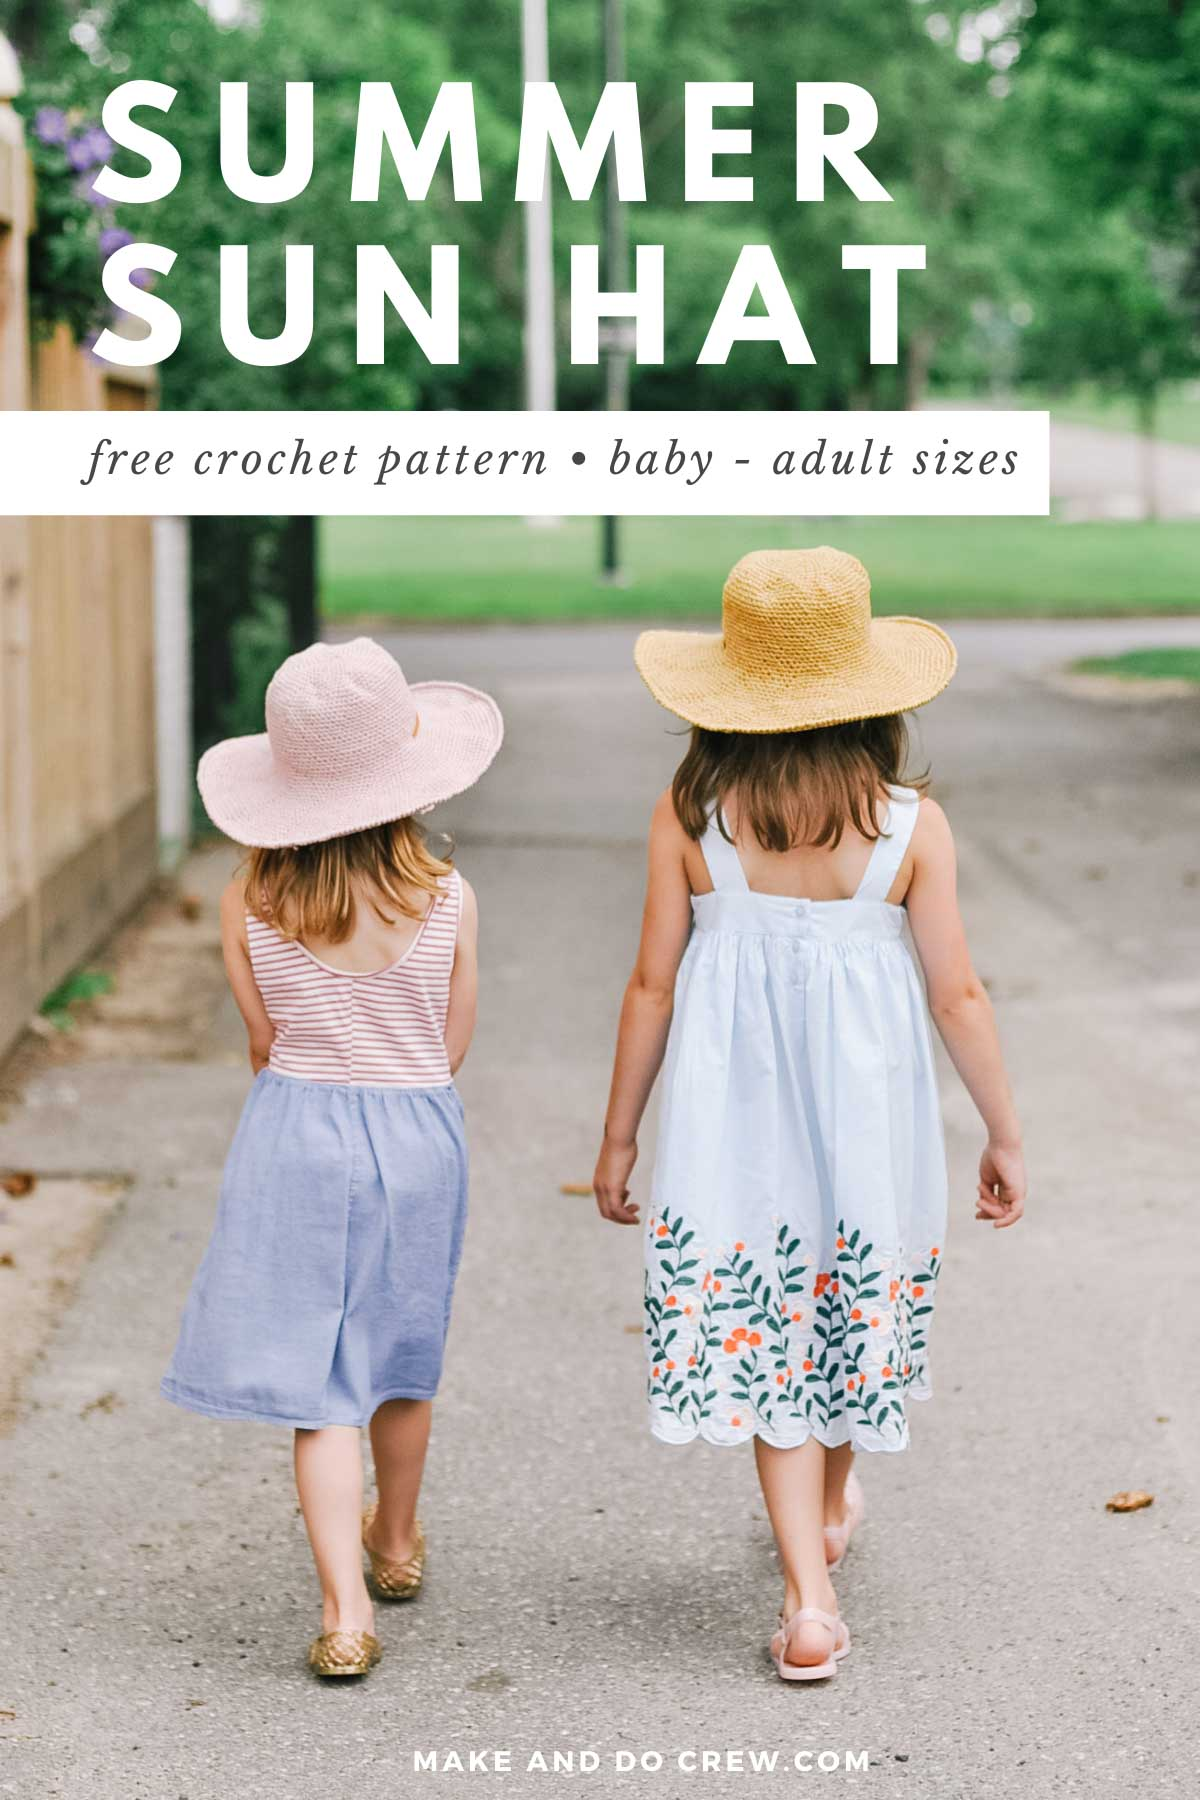 Two young girls walking together while wearing Easter dresses and crochet sun hats for kids made with Lion Brand Rewind yarn.